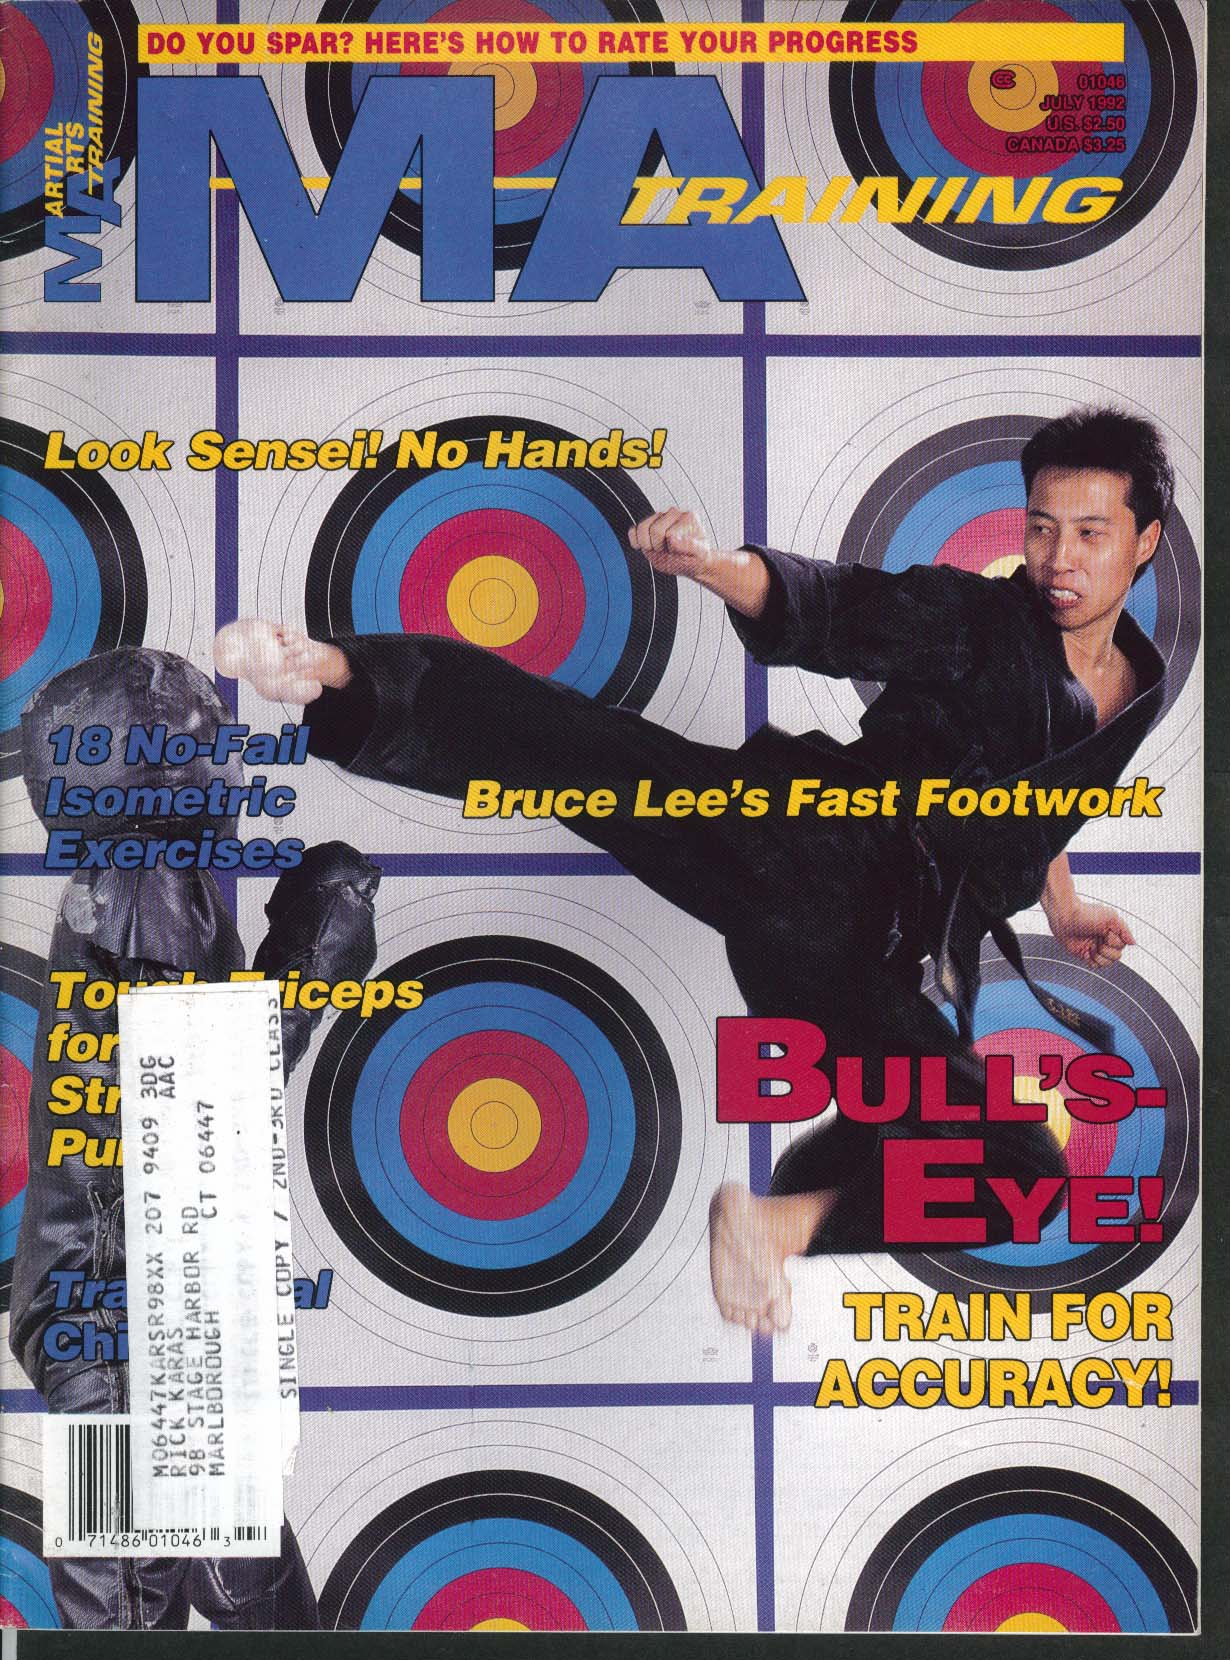 Image for MARTIAL ARTS MA TRAINING Bruce Lee Footwork Chishi Okinawa Accuracy 7 1992